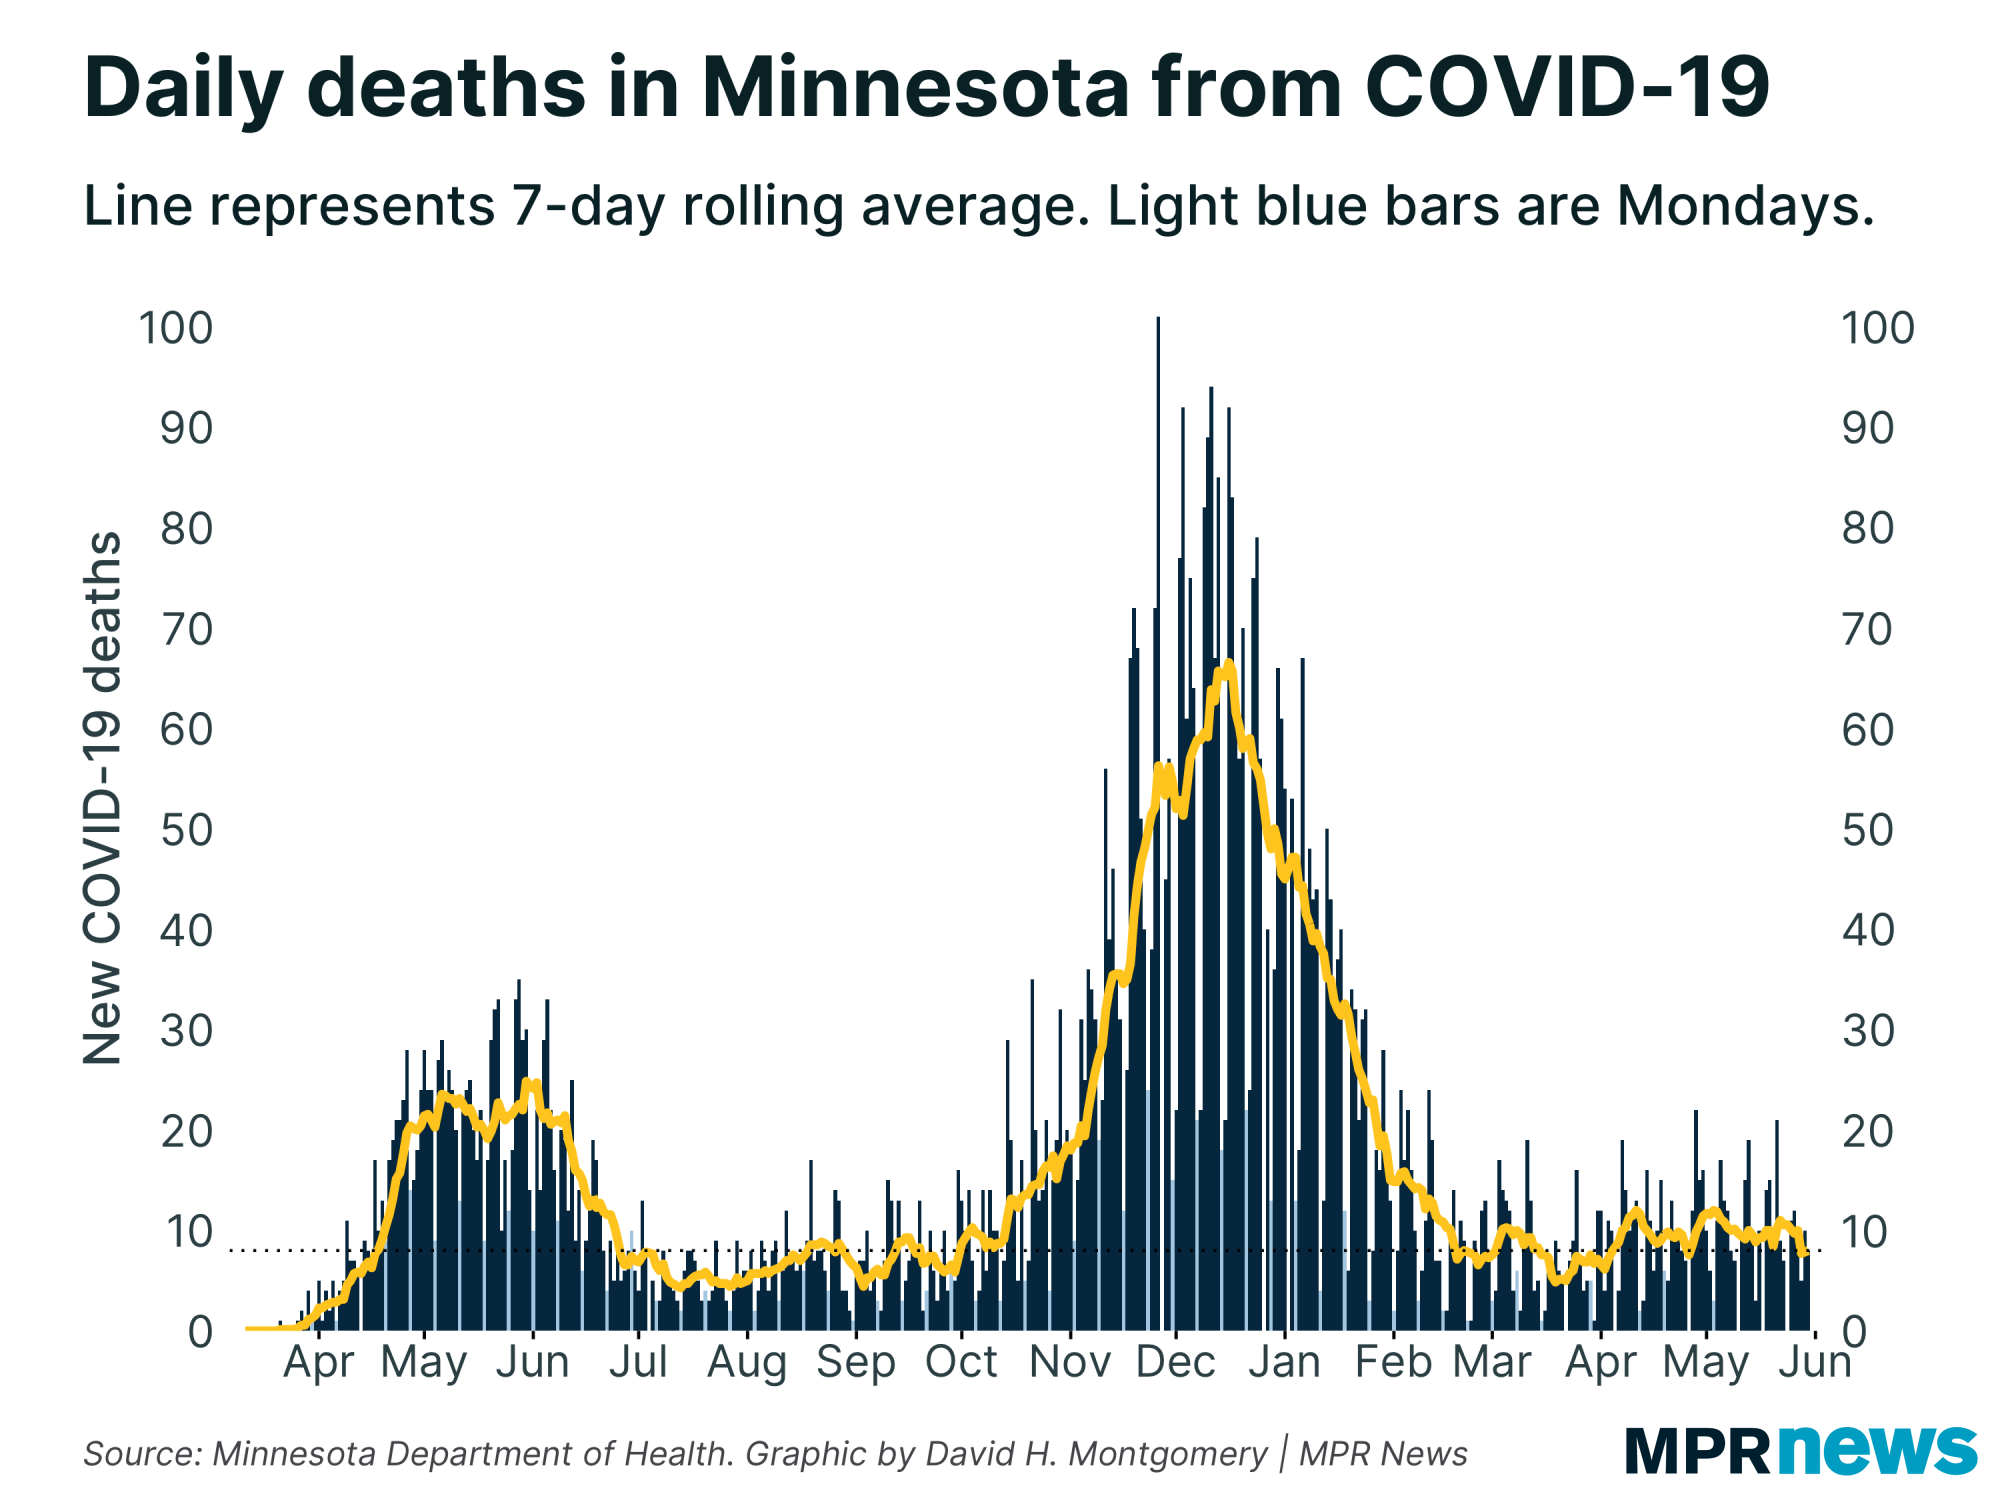 New COVID-19-related deaths reported in Minnesota each day.